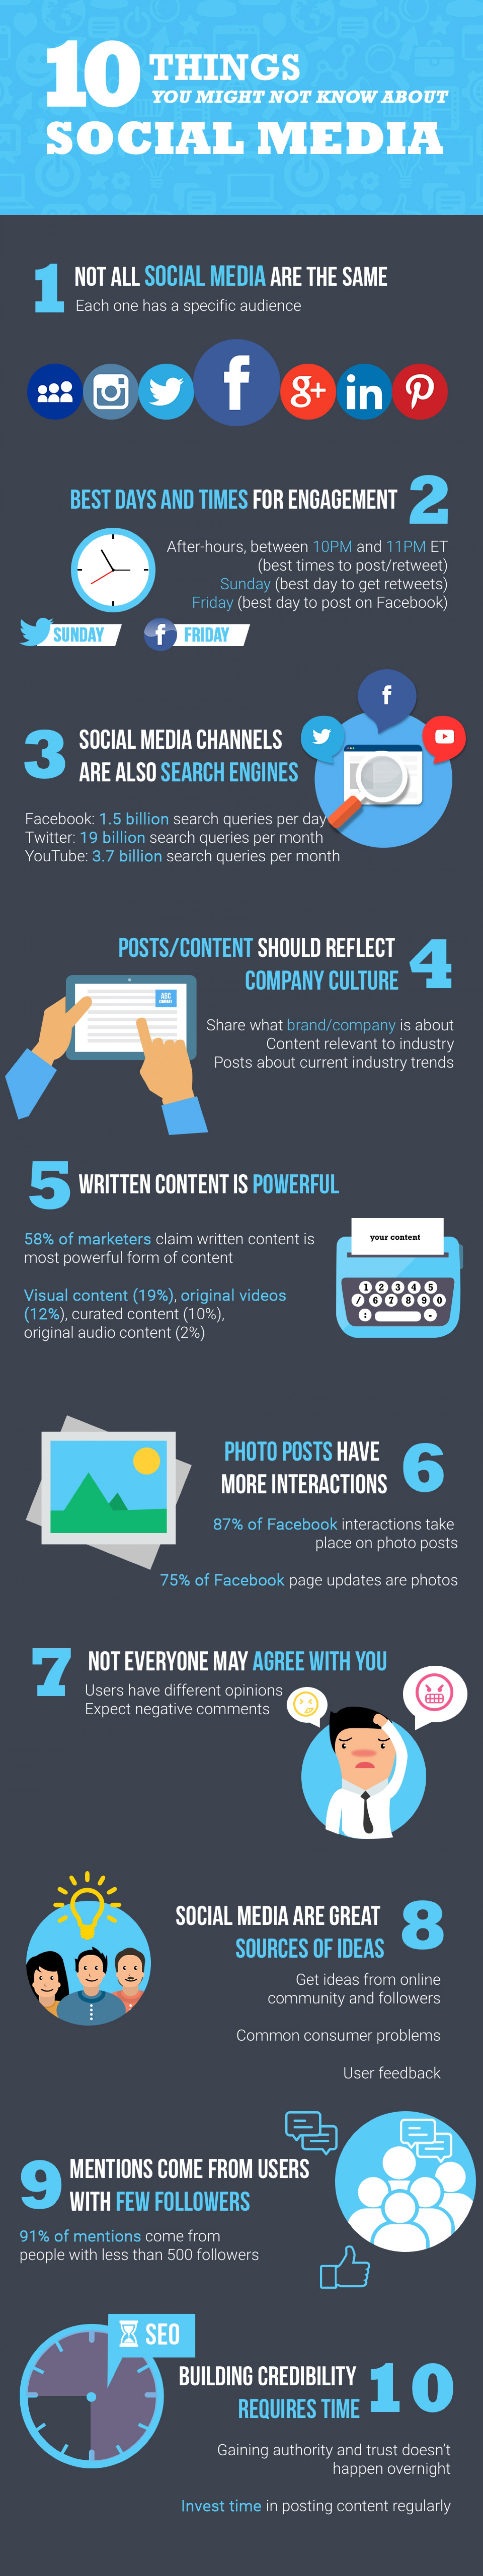 10 Things You Might Not Know About Social Media - infographic